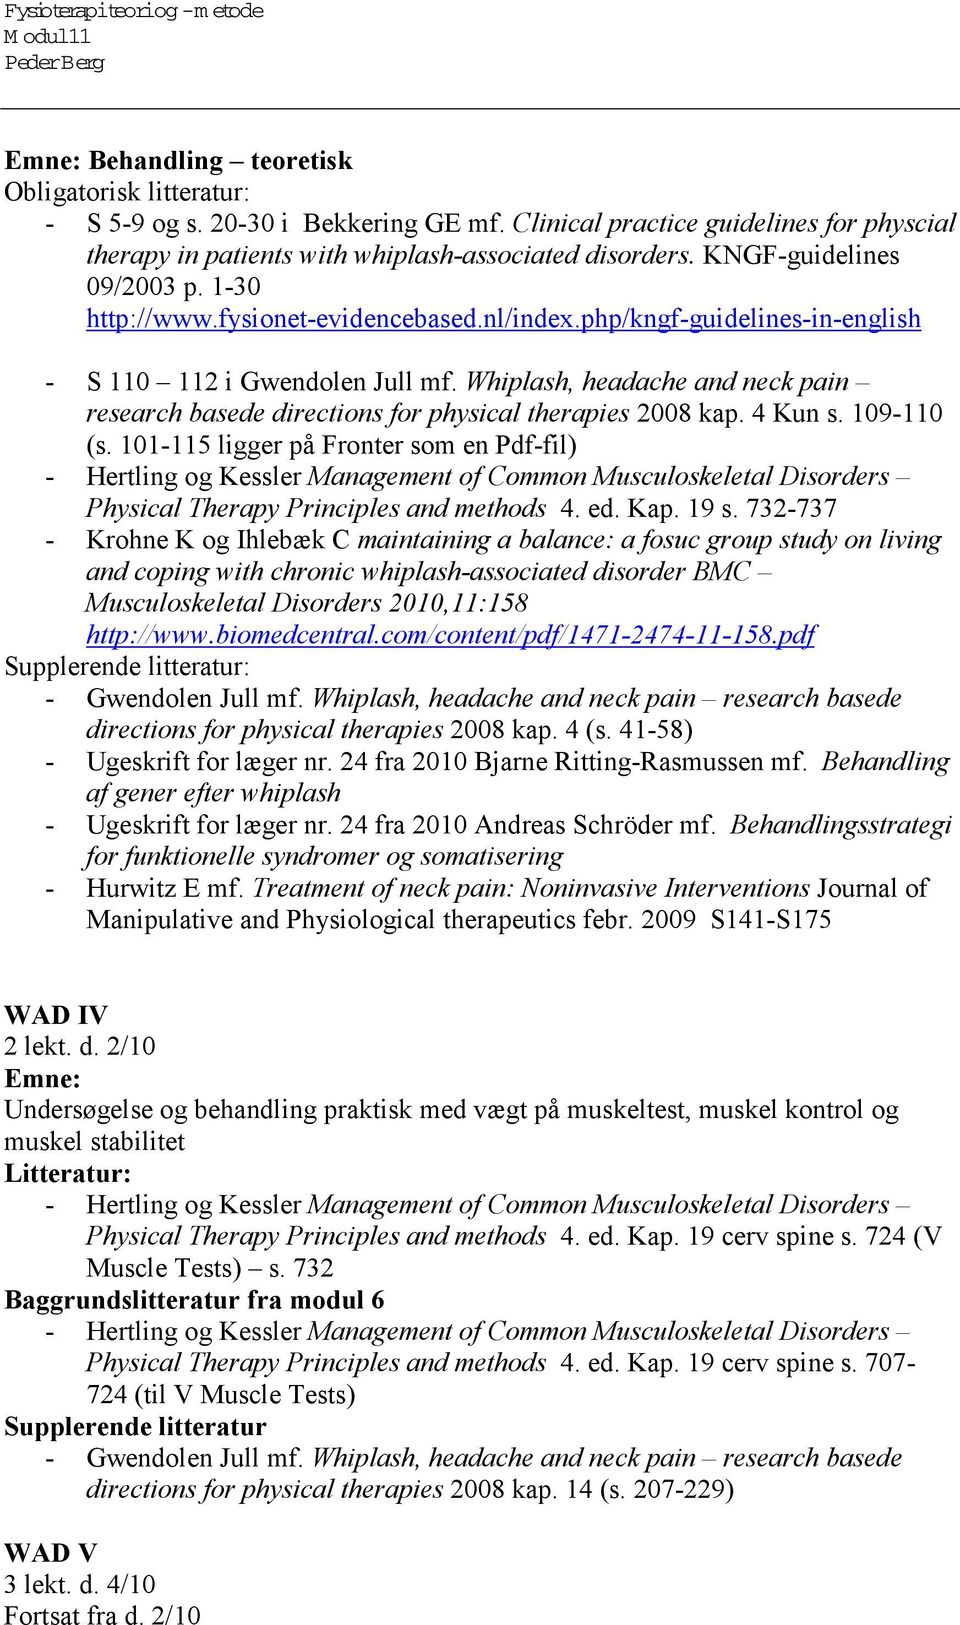 Whiplash, headache and neck pain research basede directions for physical therapies 2008 kap. 4 Kun s. 109-110 (s. 101-115 ligger på Fronter som en Pdf-fil) Physical Therapy Principles and methods 4.